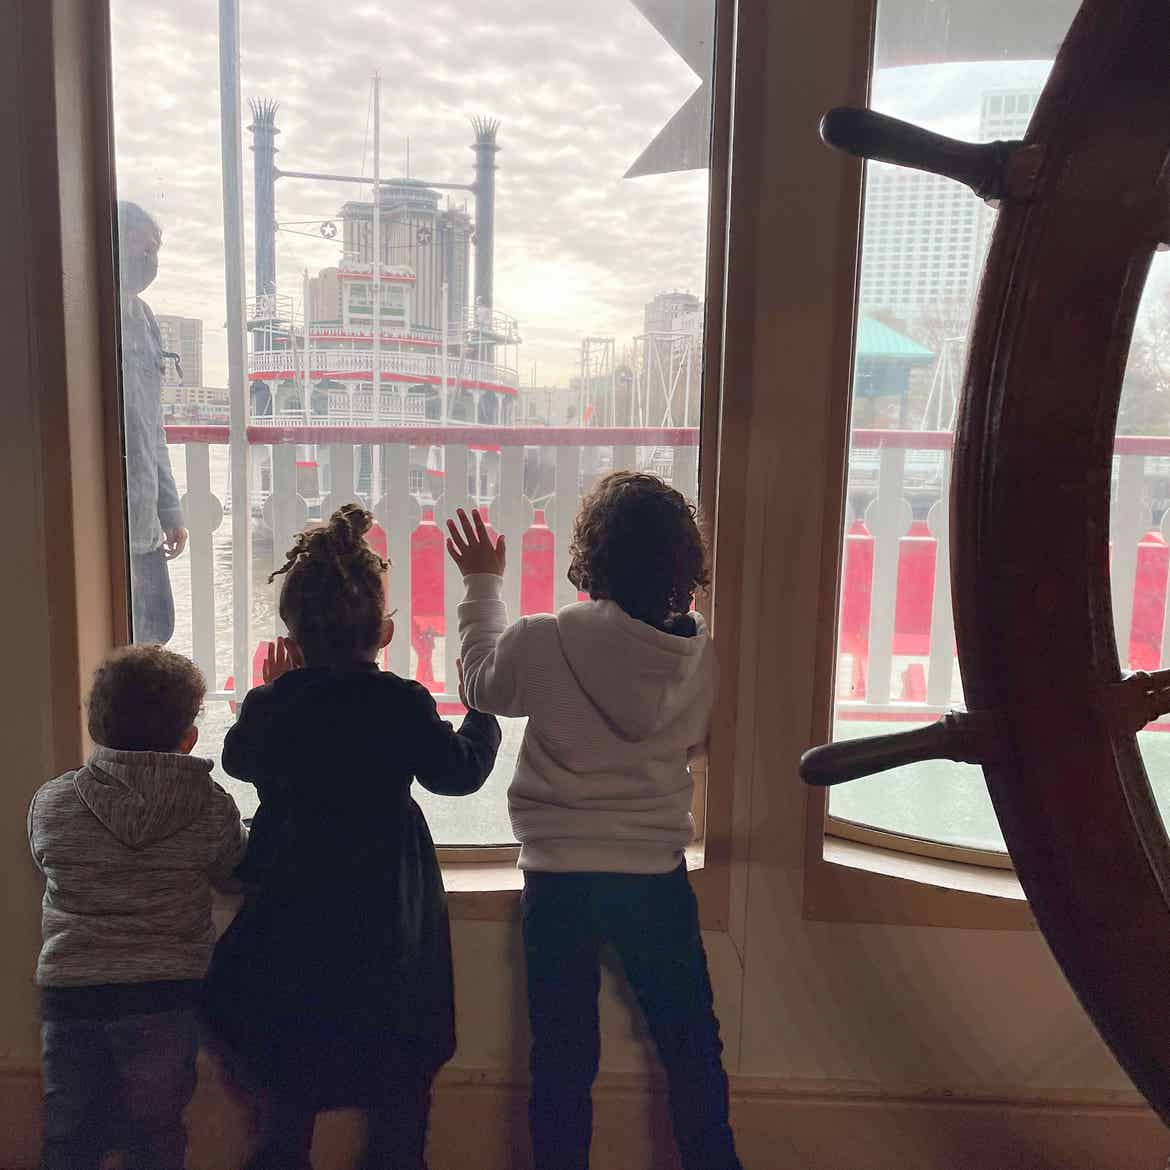 Featured Contributor, Sally Butan of @butanclan's children, Alston (left), Alissa (middle), and Alex (right) look out of a window on the Steamboat Natchez of the Mississippi River of New Orleans, Louisiana.